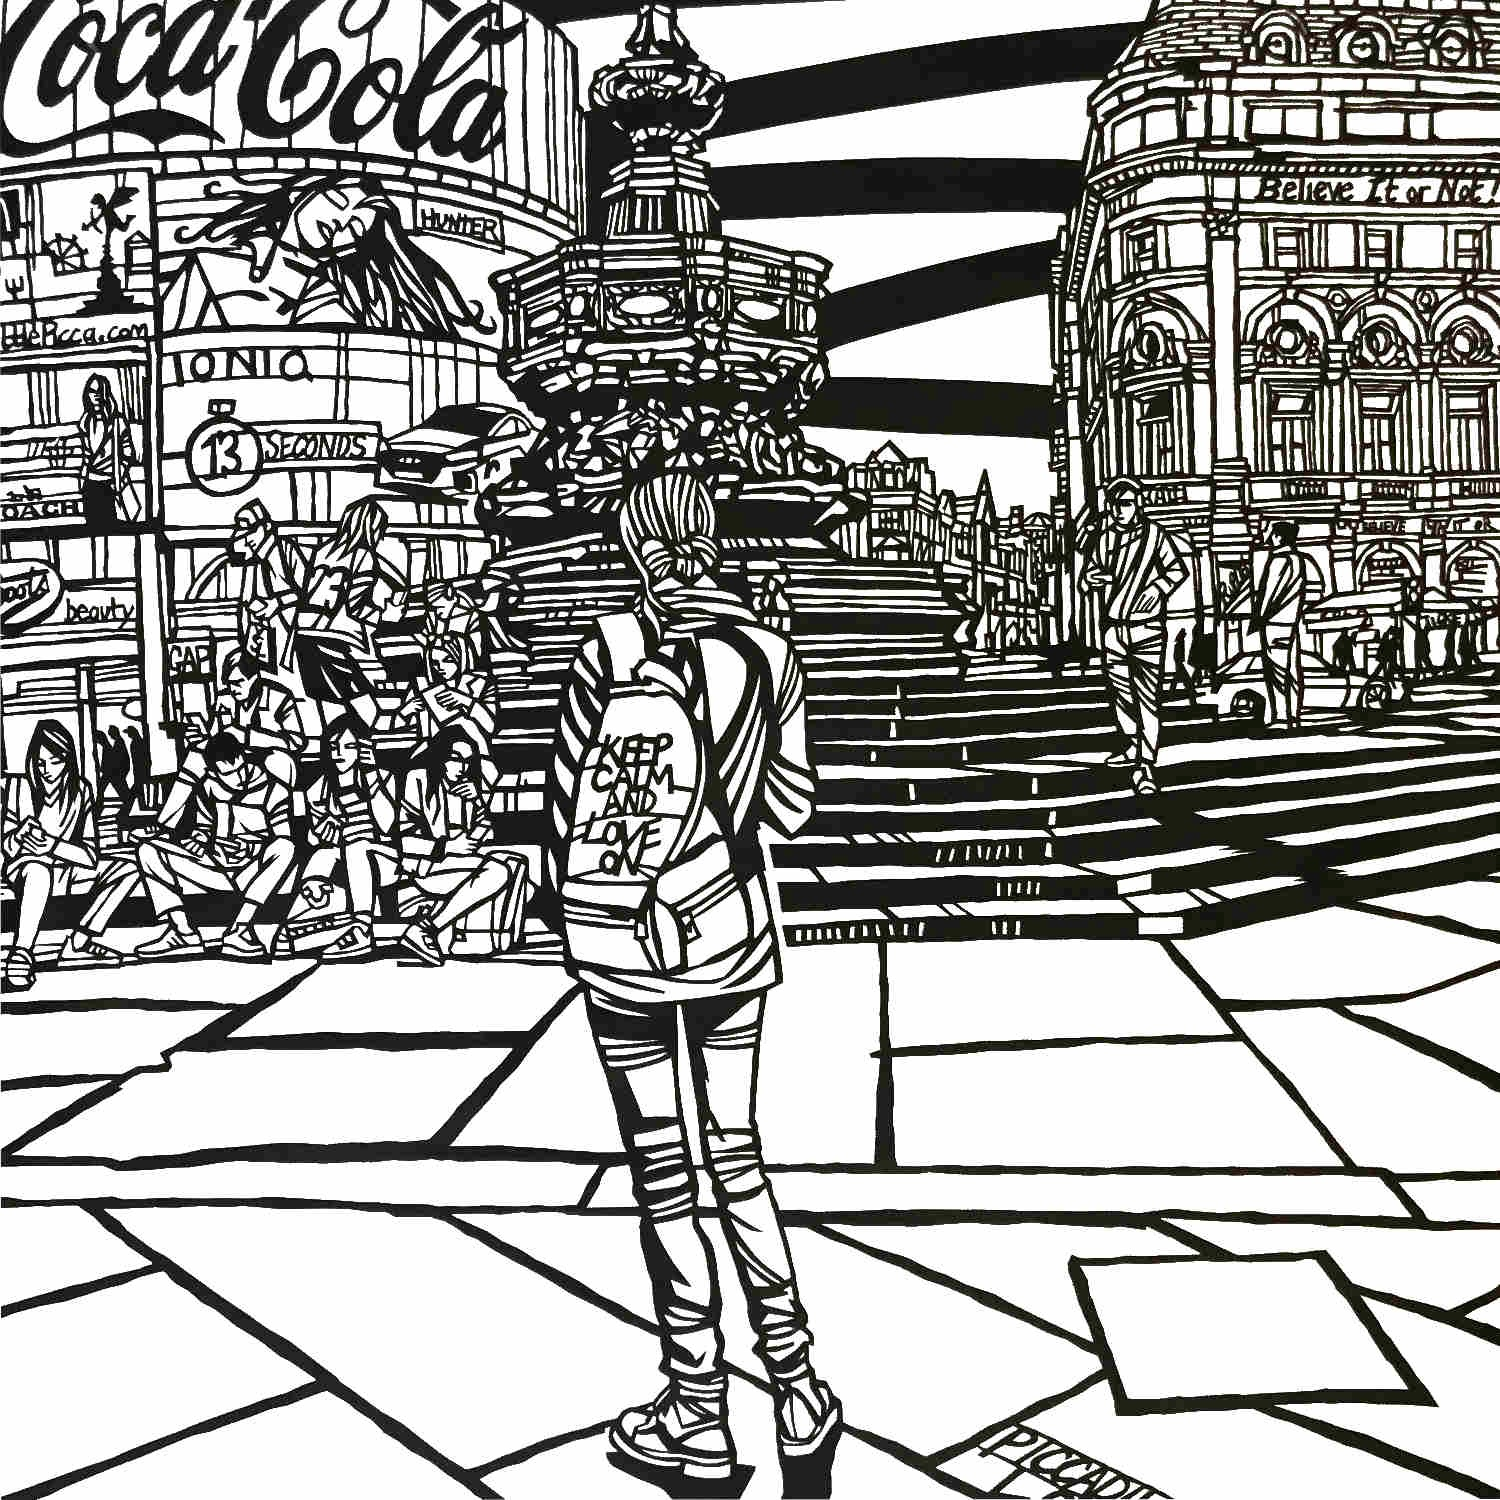 Piccadilly Circus, London  papercut  76 x 56cm  £850